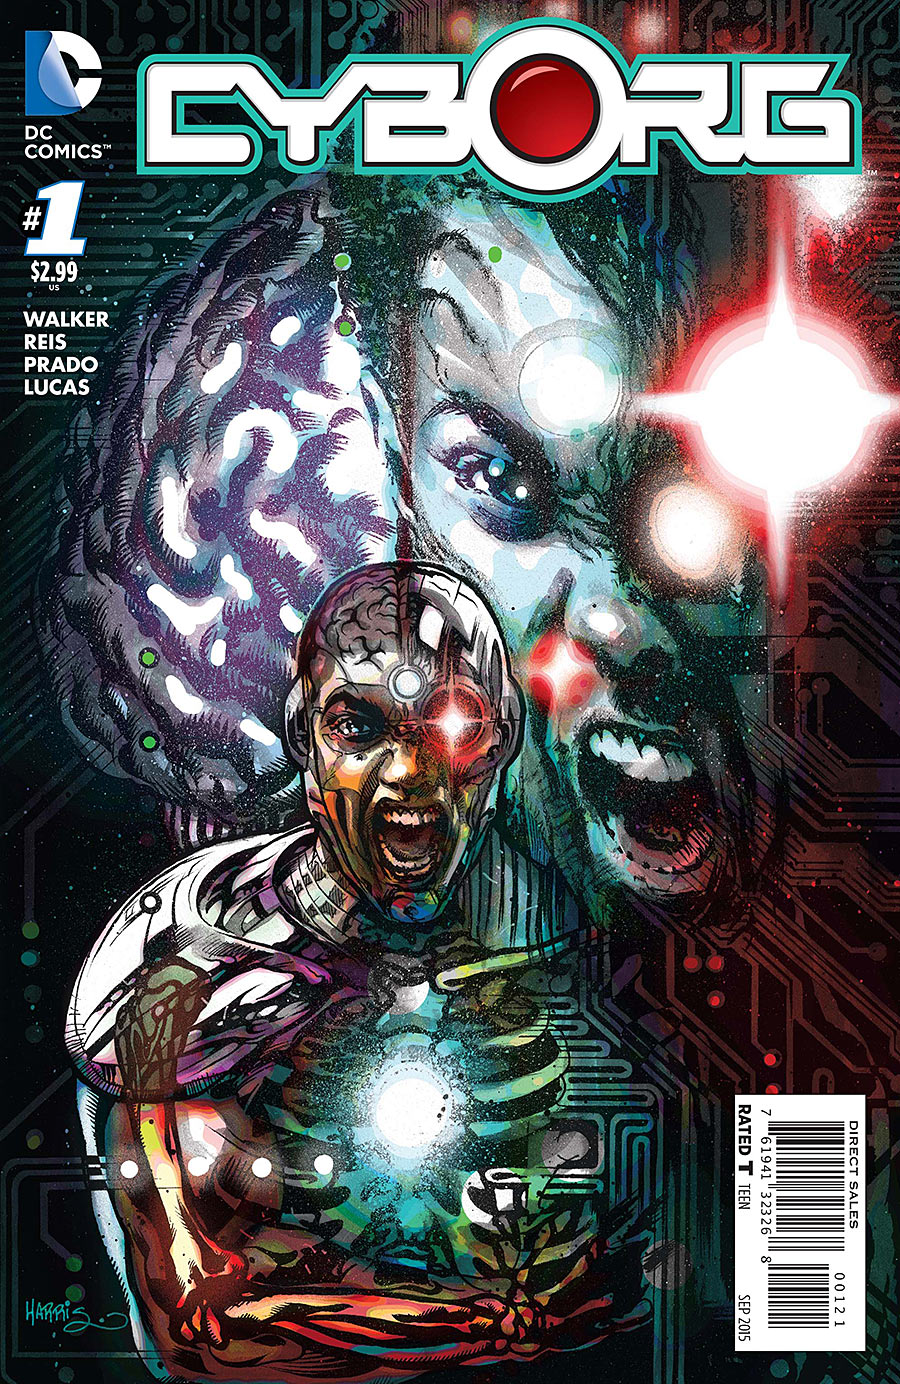 DC You Spoilers & Review: Cyborg #1 By David F. Walker ...